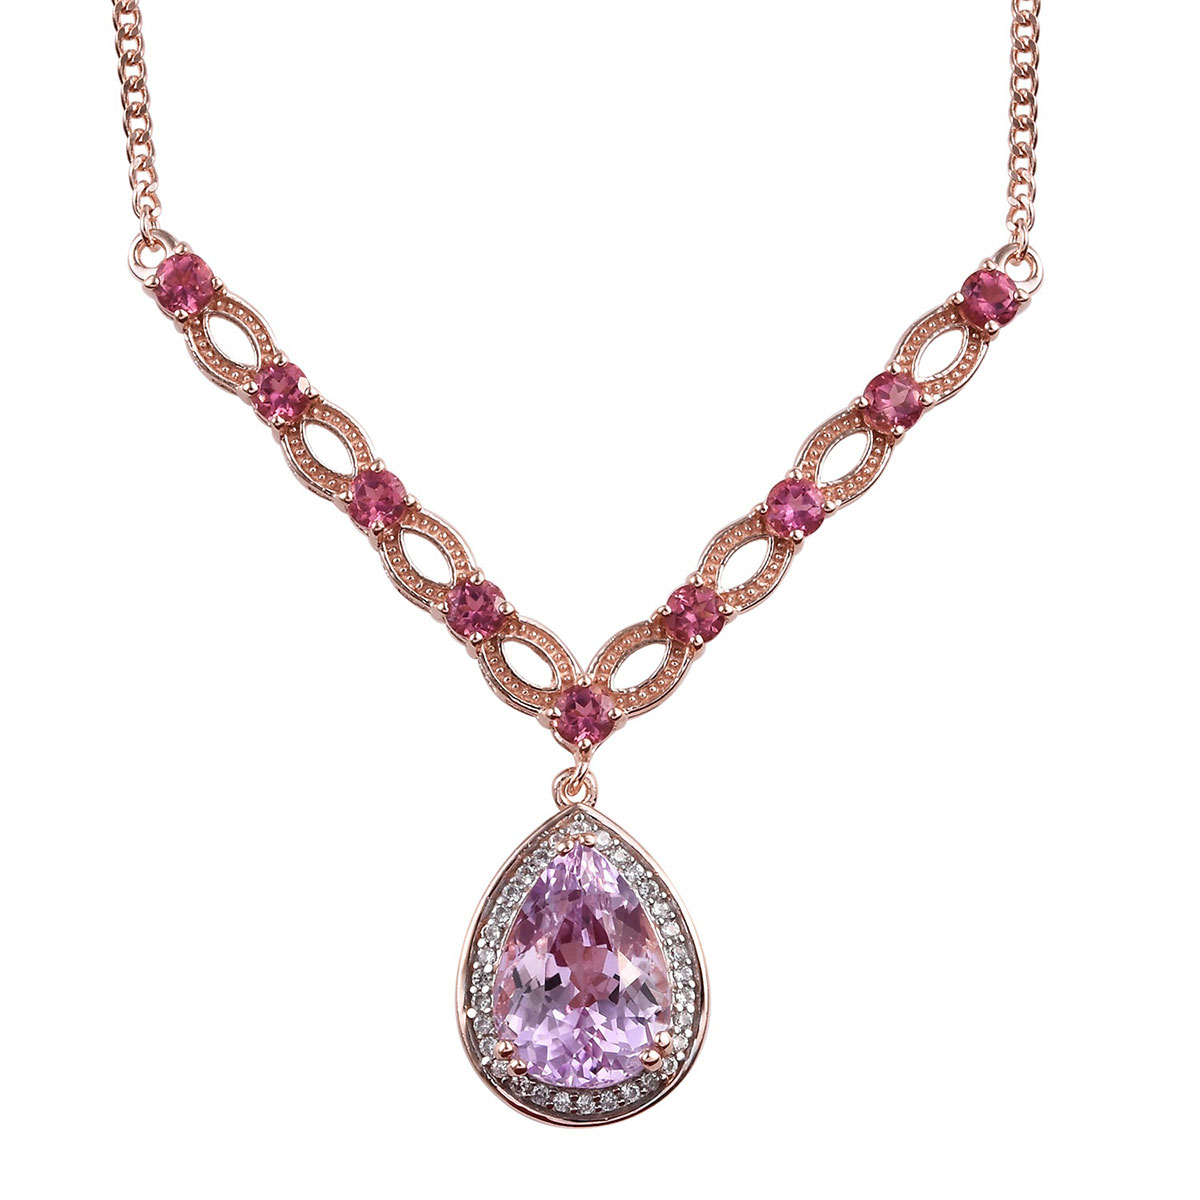 AA Premium Martha Rocha Kunzite, Multi Gemstone Necklace (18-20 in) in Vermeil RG Over Sterling Silver 9.12 ctw